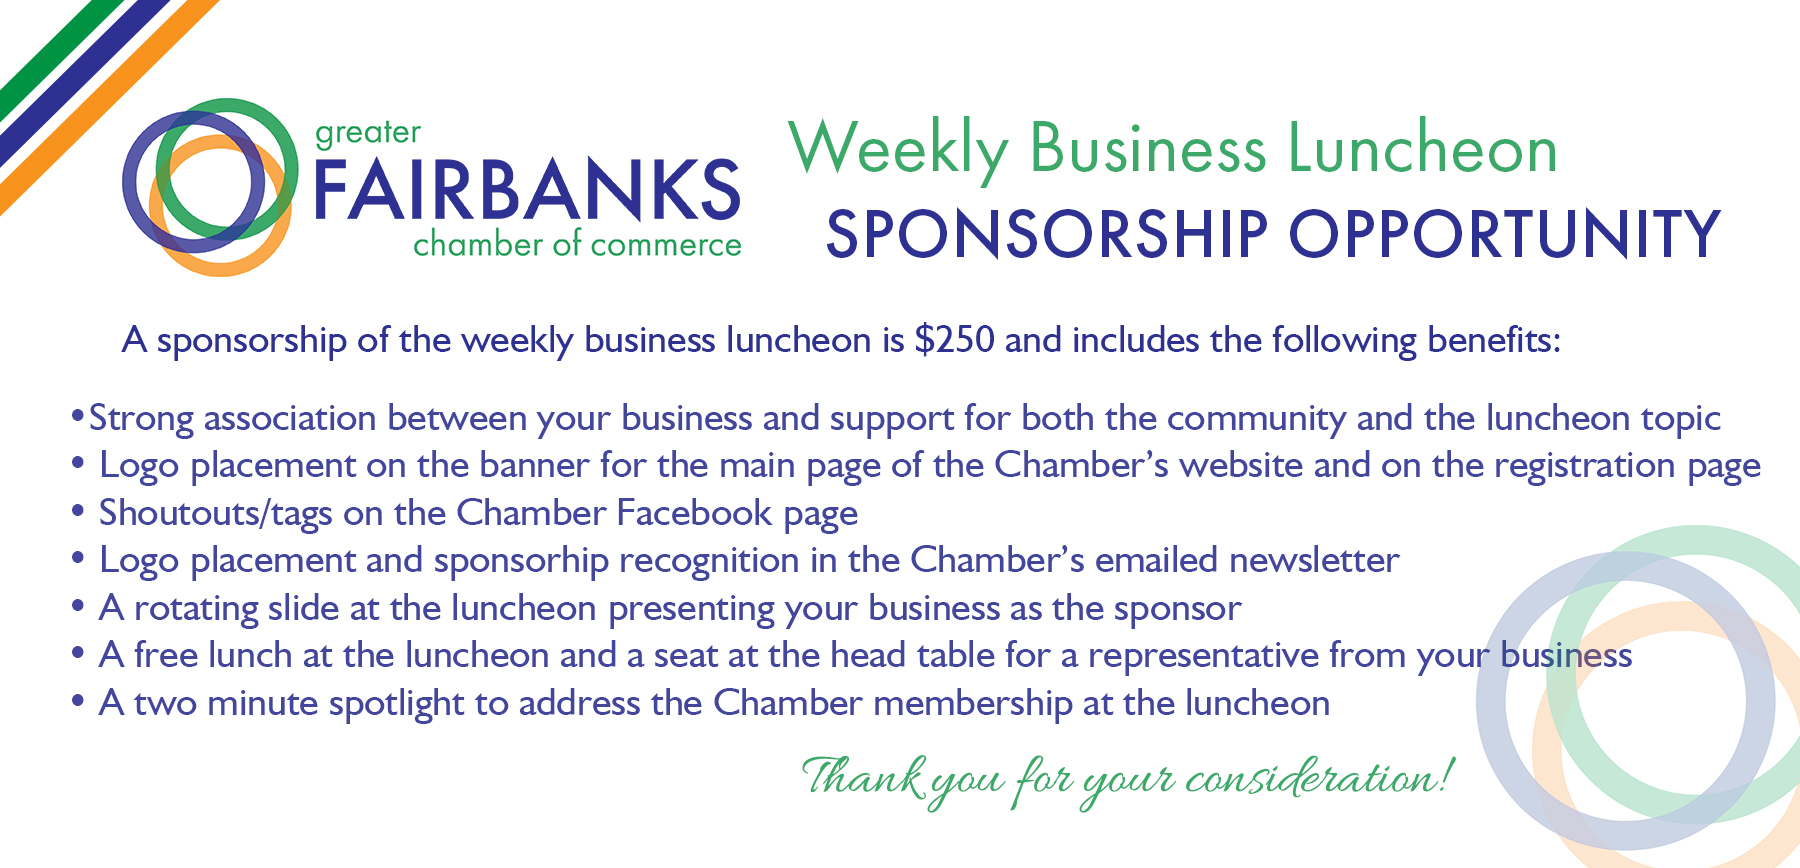 WBL-Sponsorship-Graphic.jpg